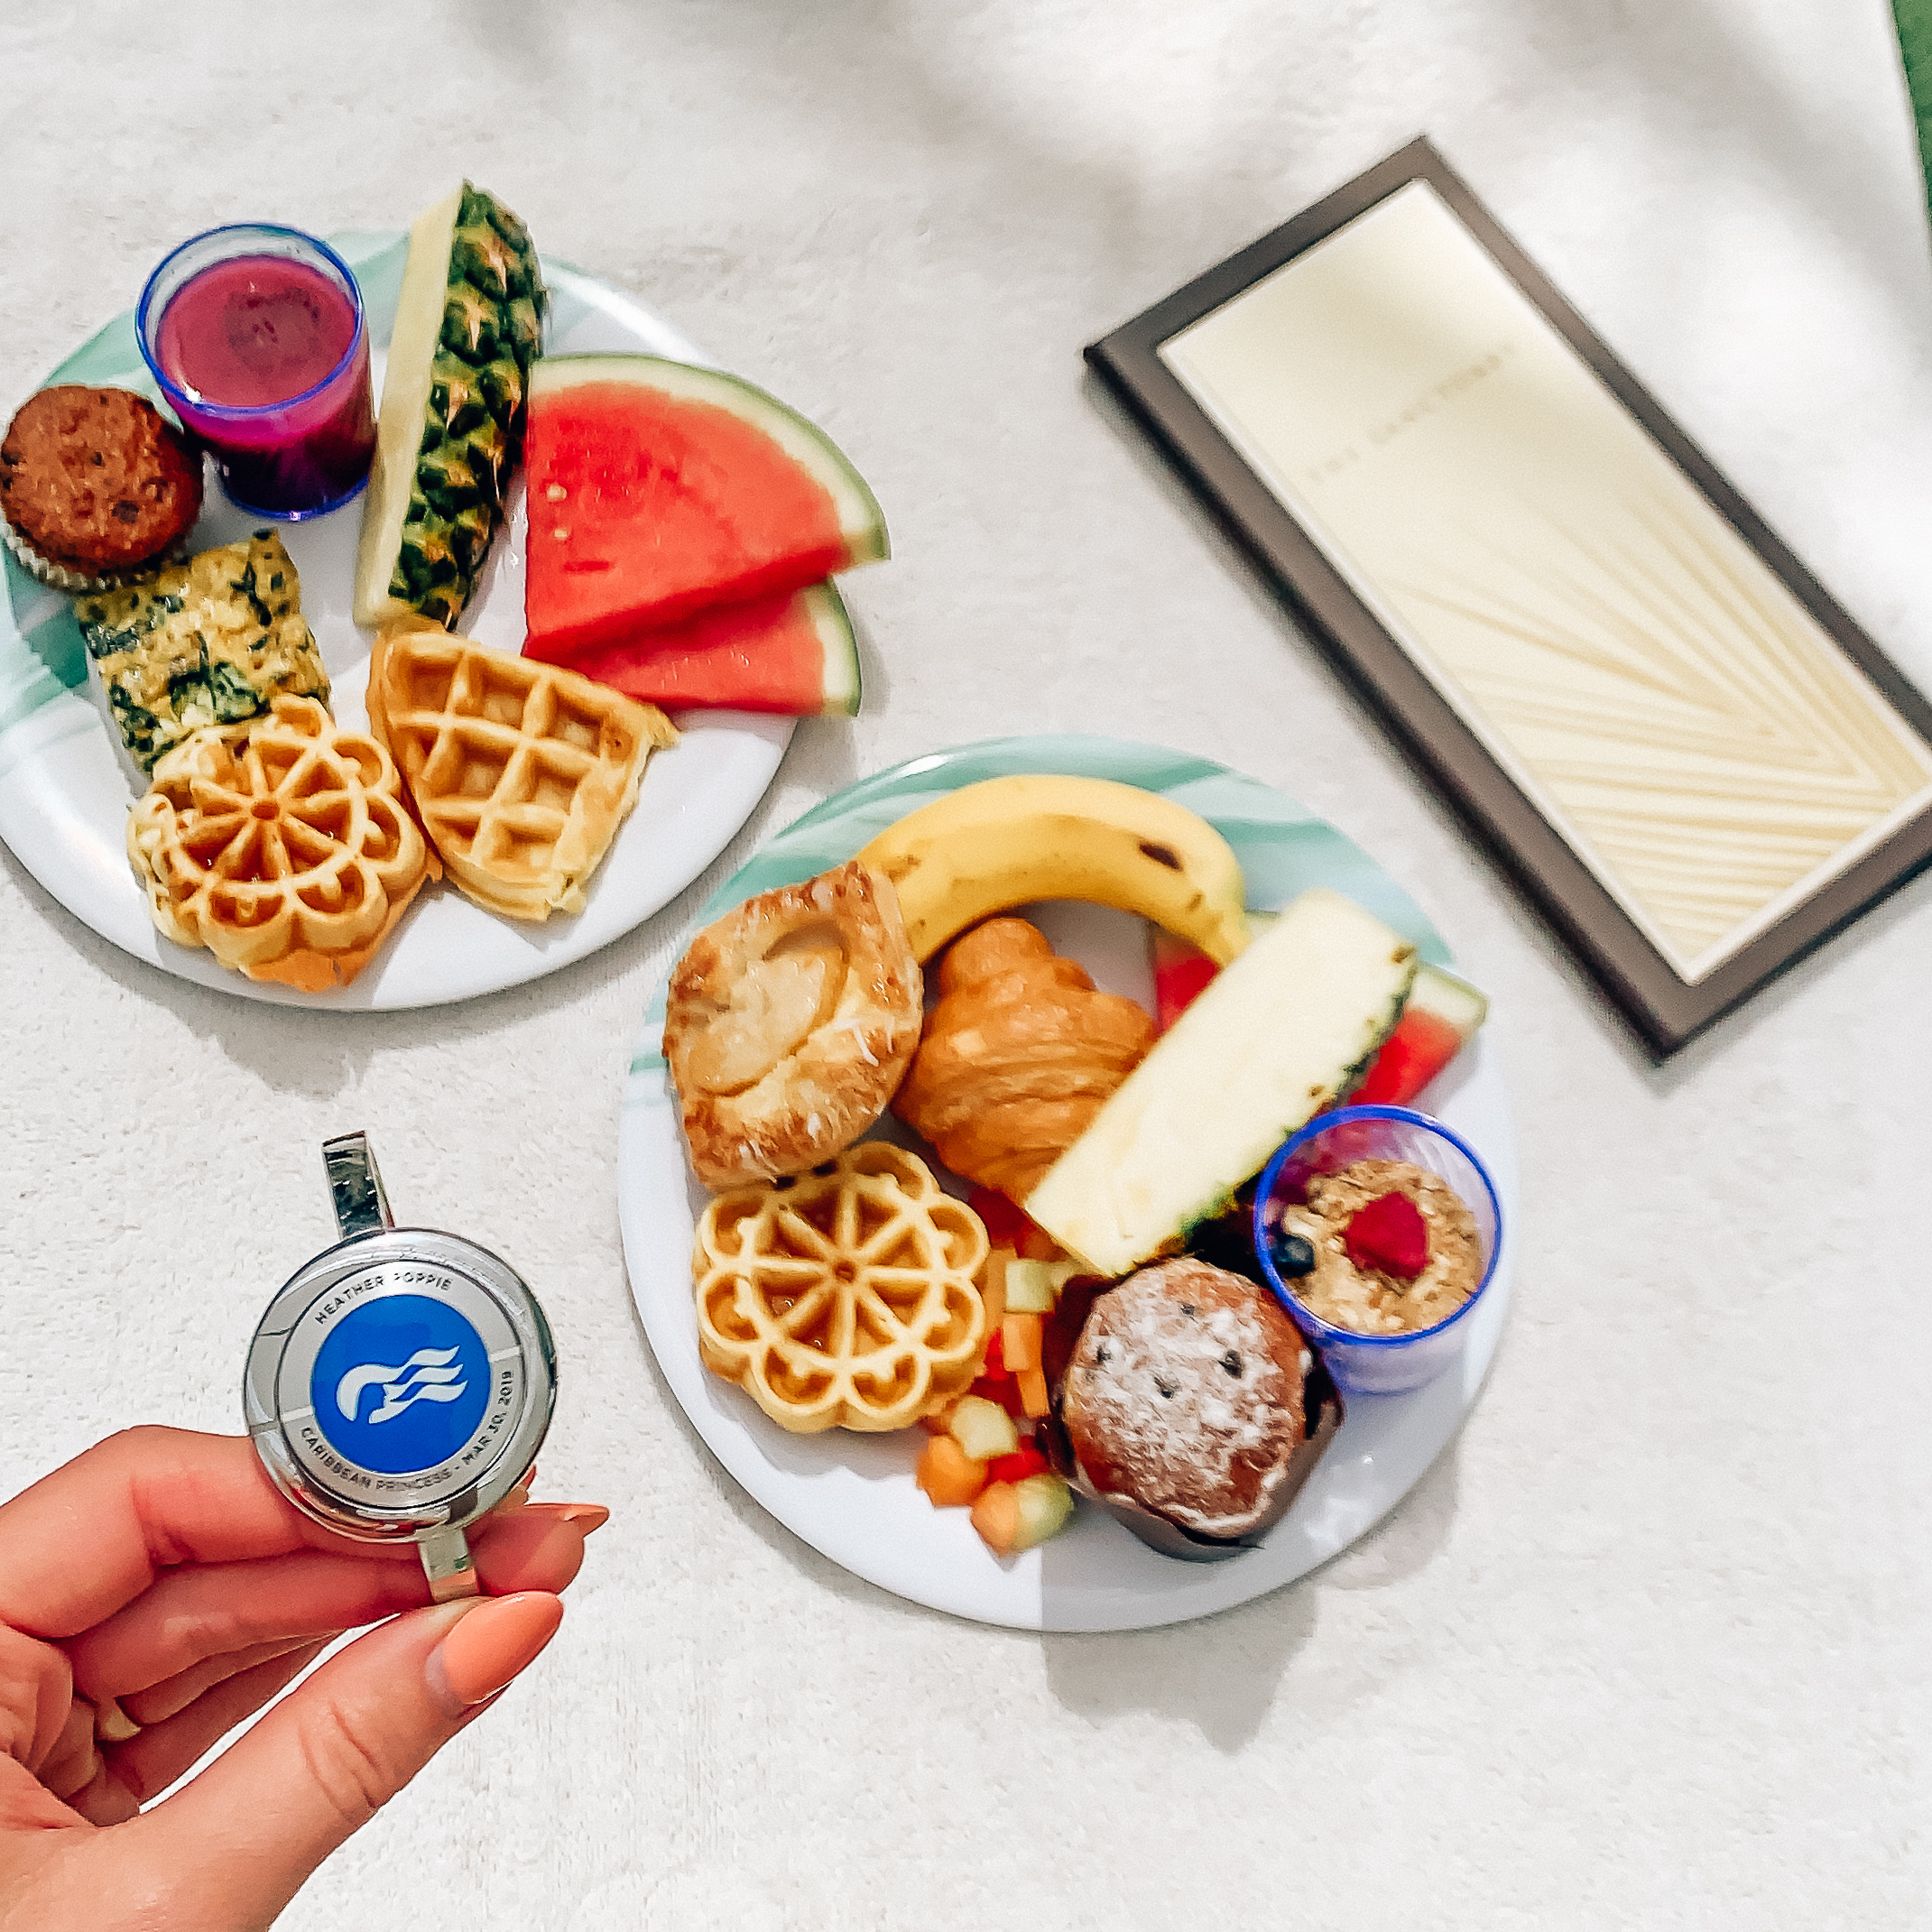 Caribbean Princess_March 2019_The Sanctuary _Food_Ocean Medallion.jpg